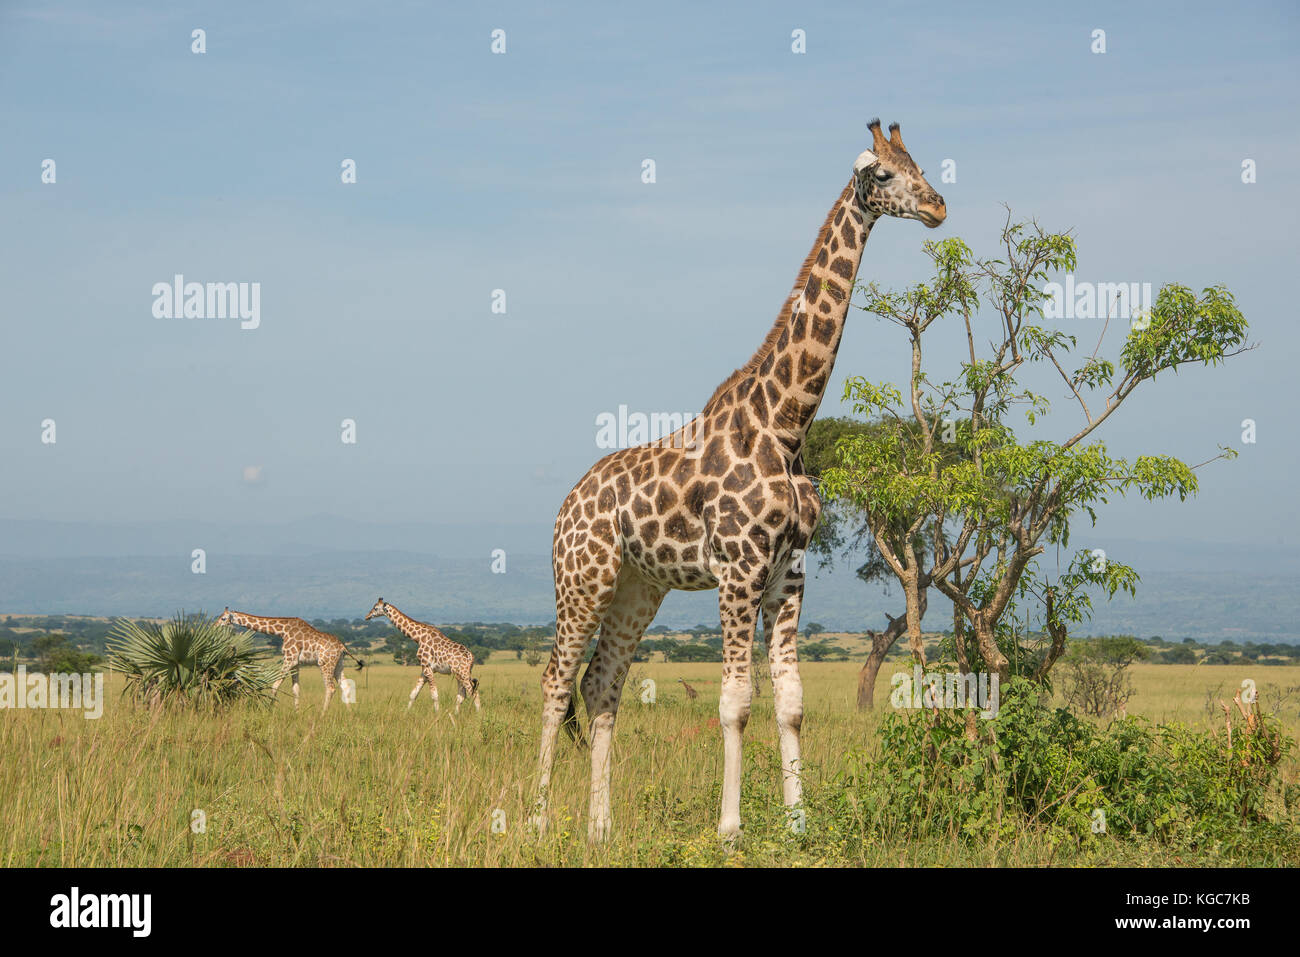 Rothschild's giraffe, an Endangered subspecies found in only two Parks; Murchison Falls National Park, Uganda. - Stock Image